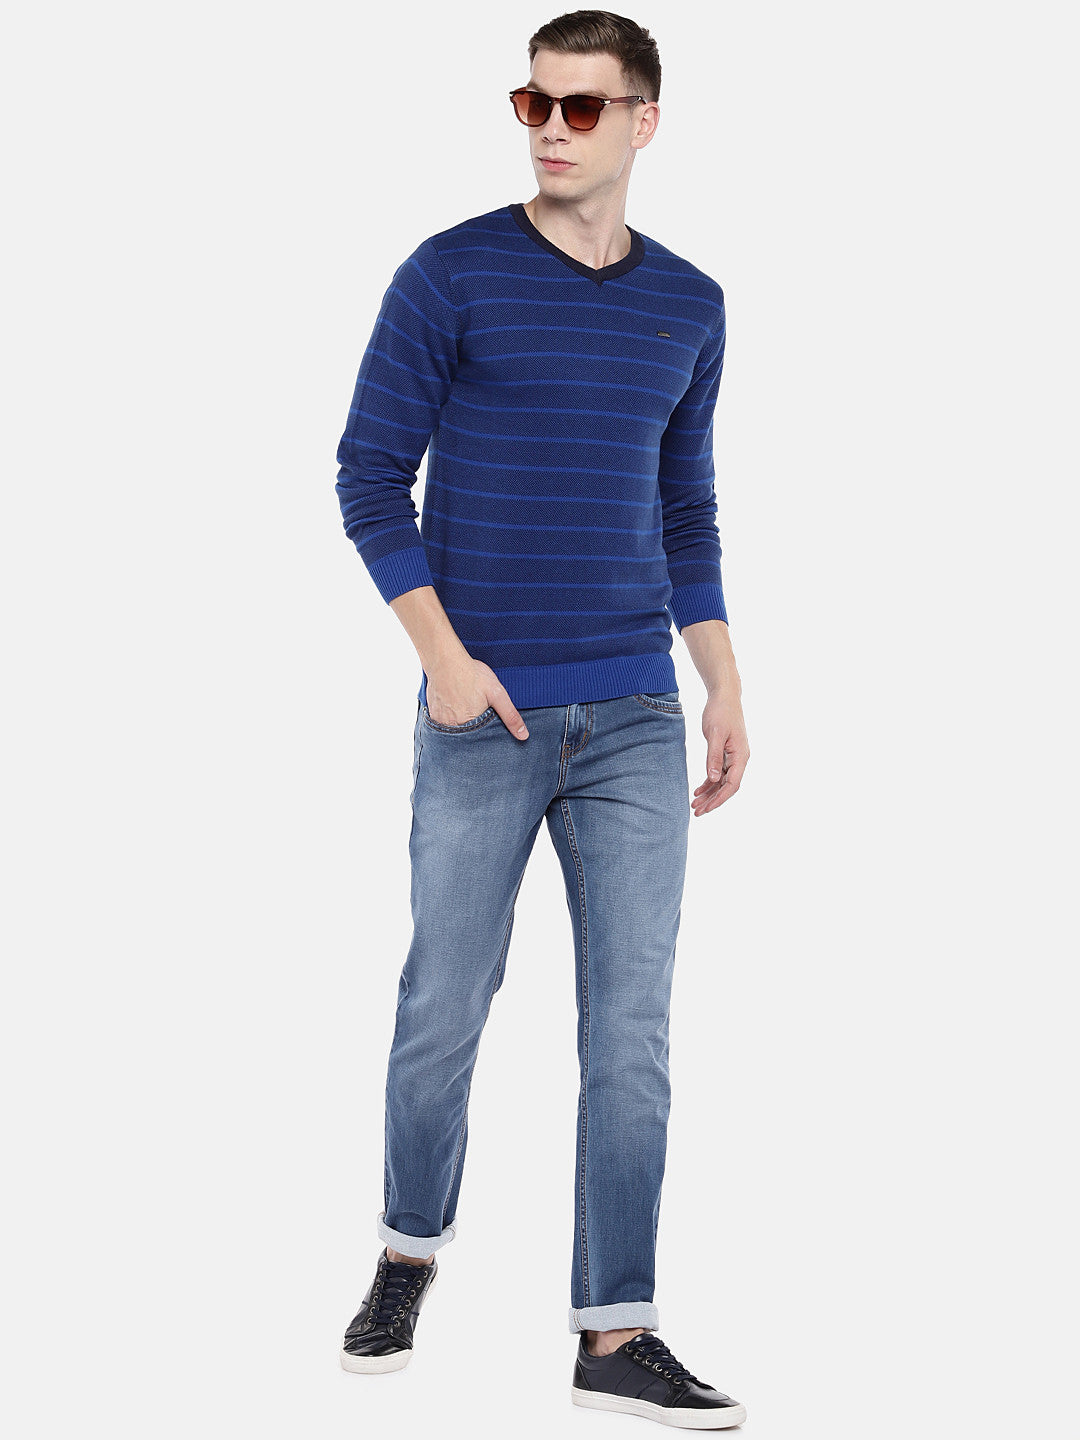 Blue Striped Pullover Sweater-4